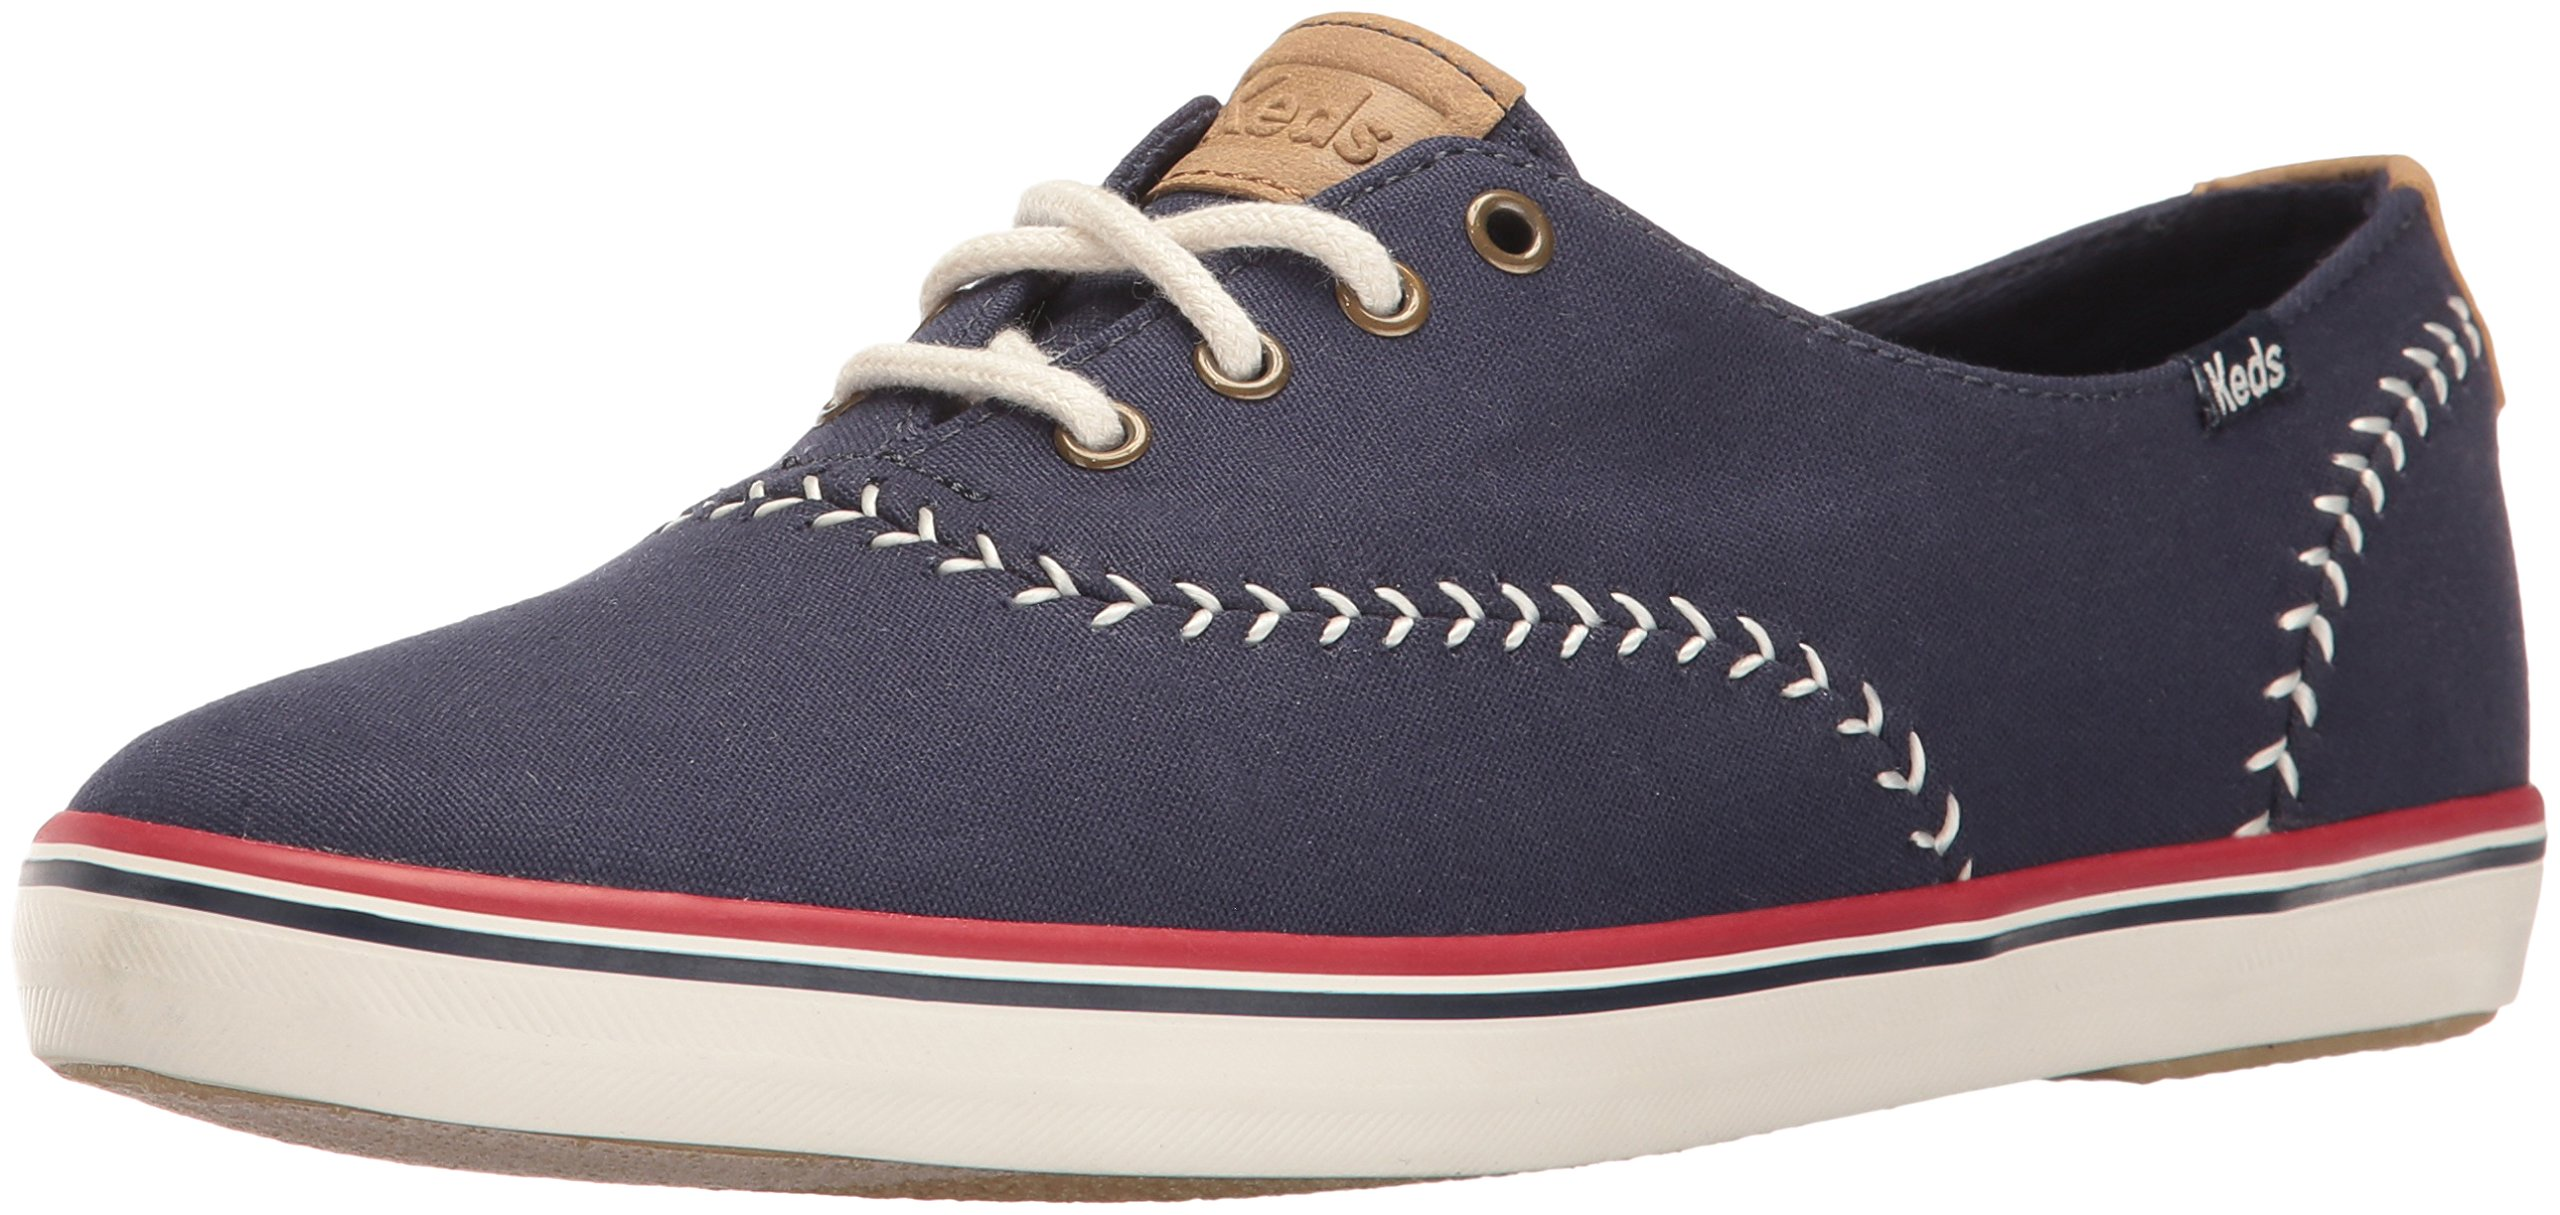 Keds Women's Champion Pennant Fashion Sneaker, Peacoat Navy, 6 M US